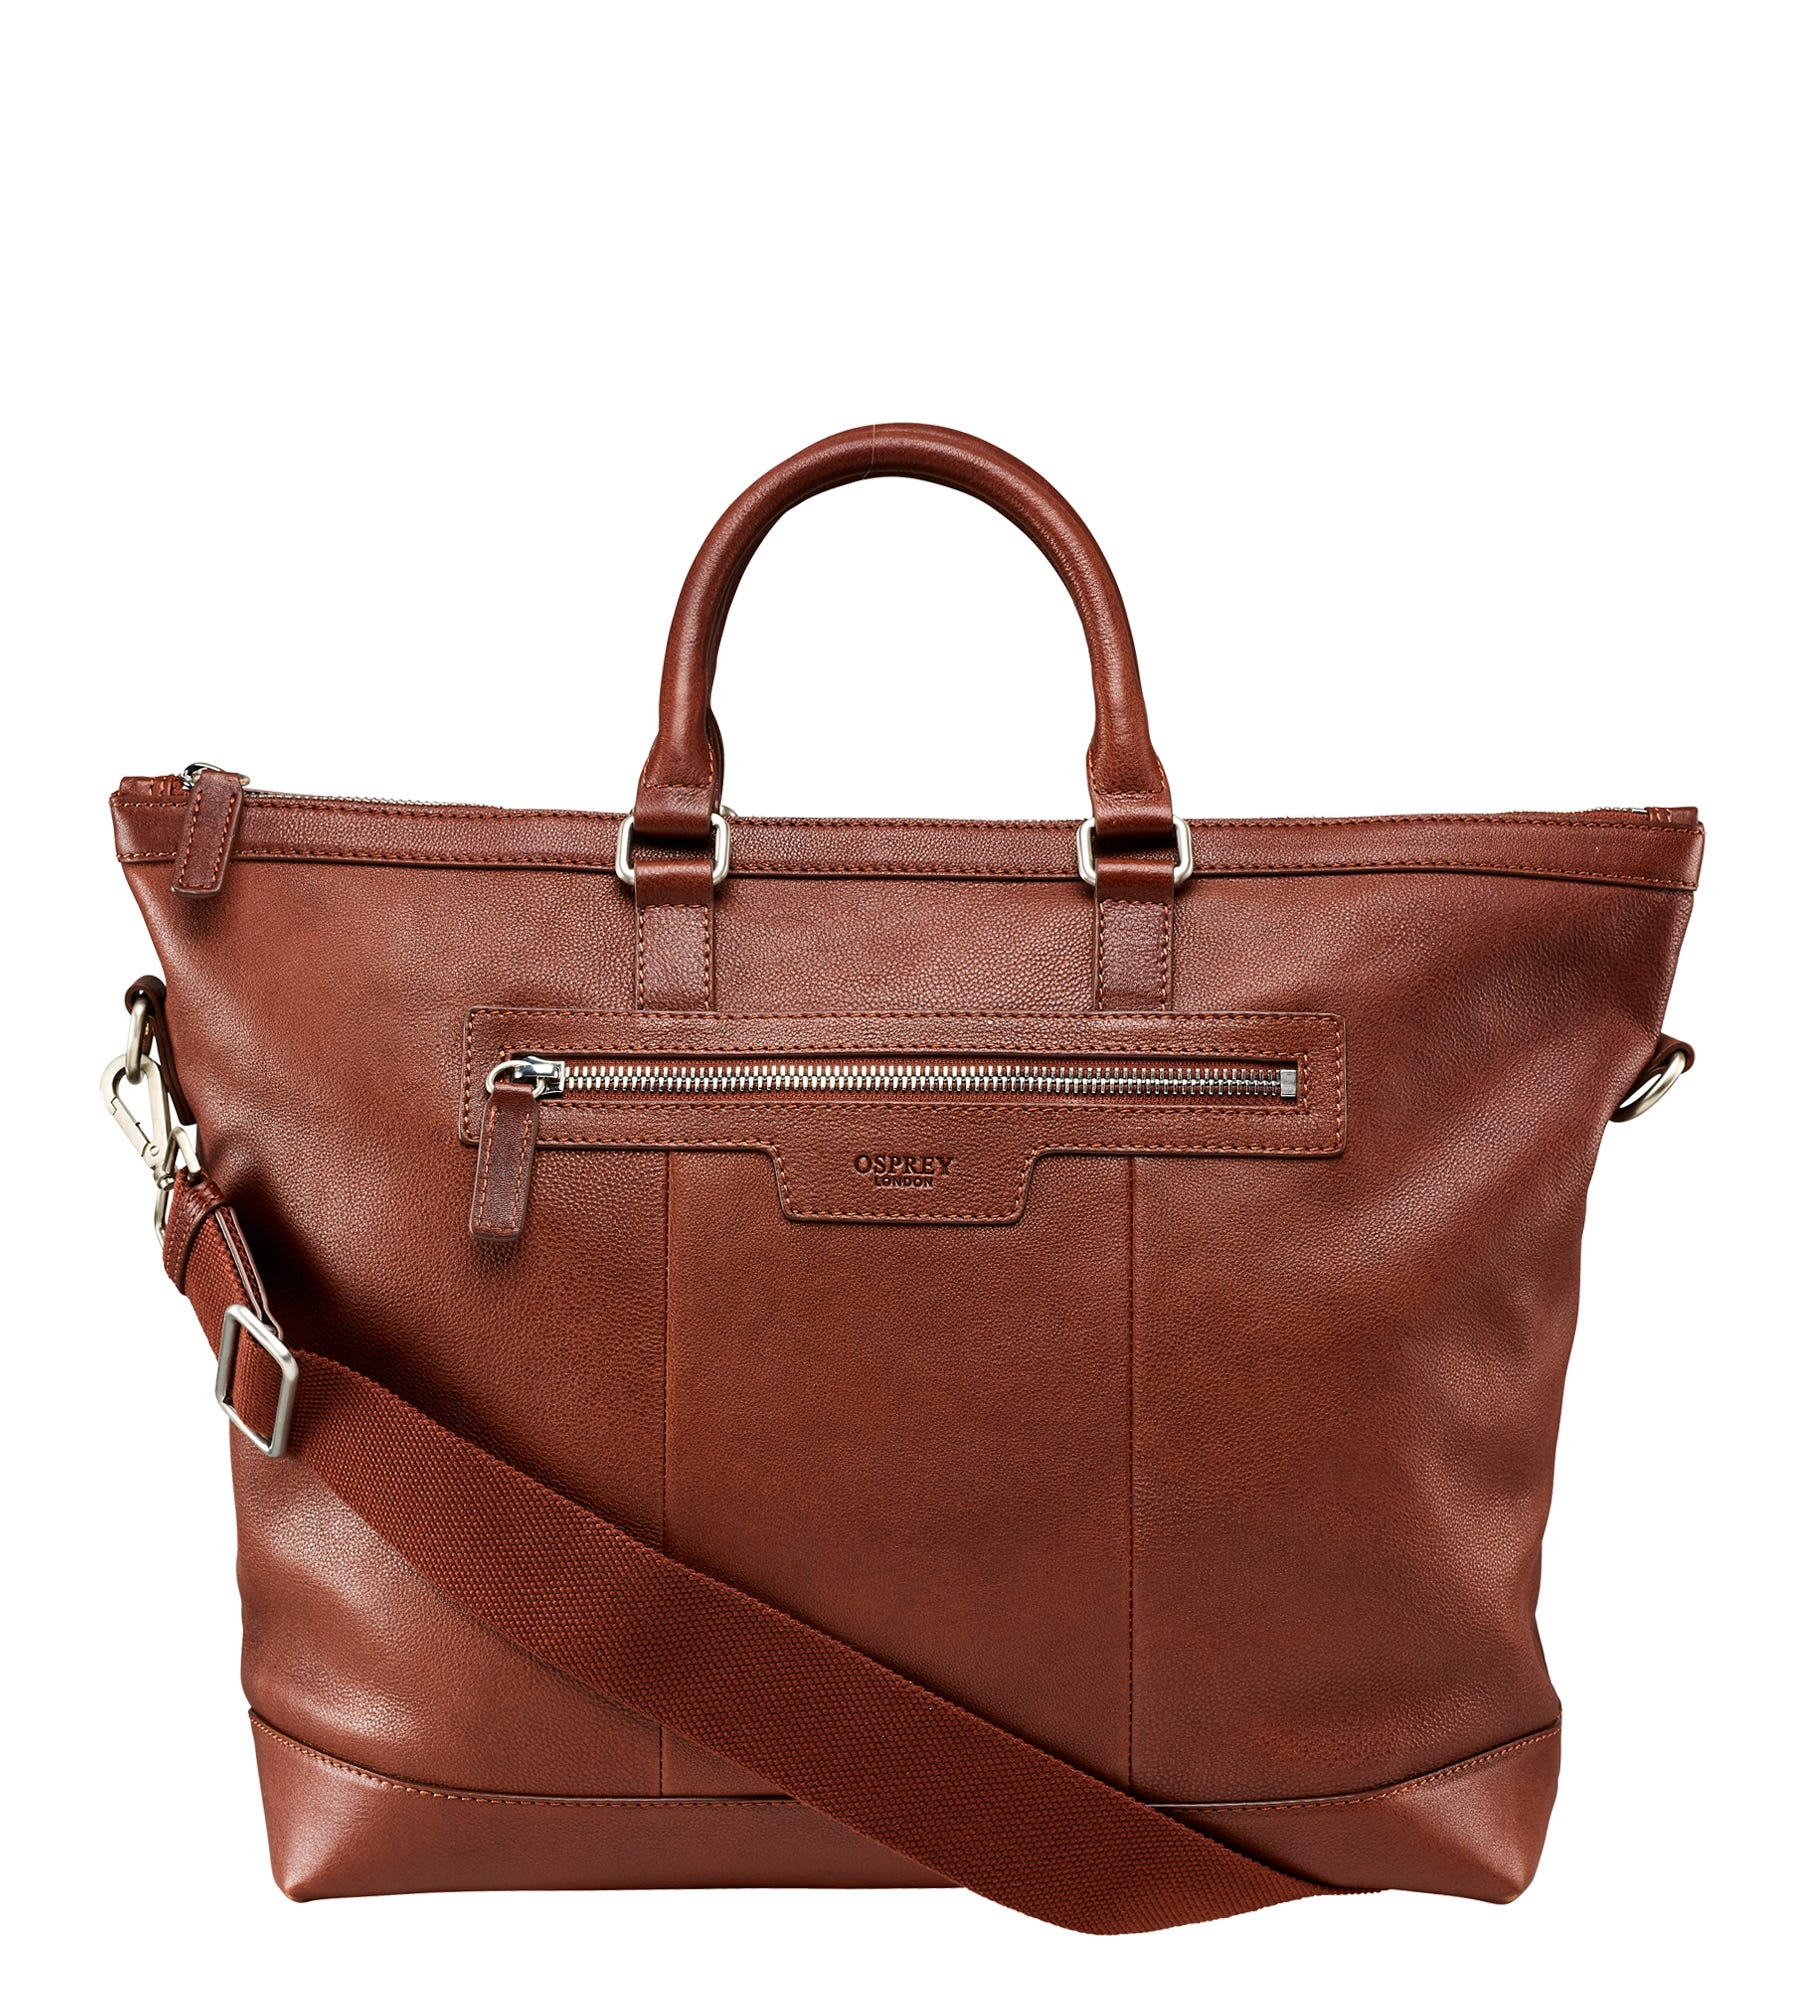 An image of The Watson Leather Tote